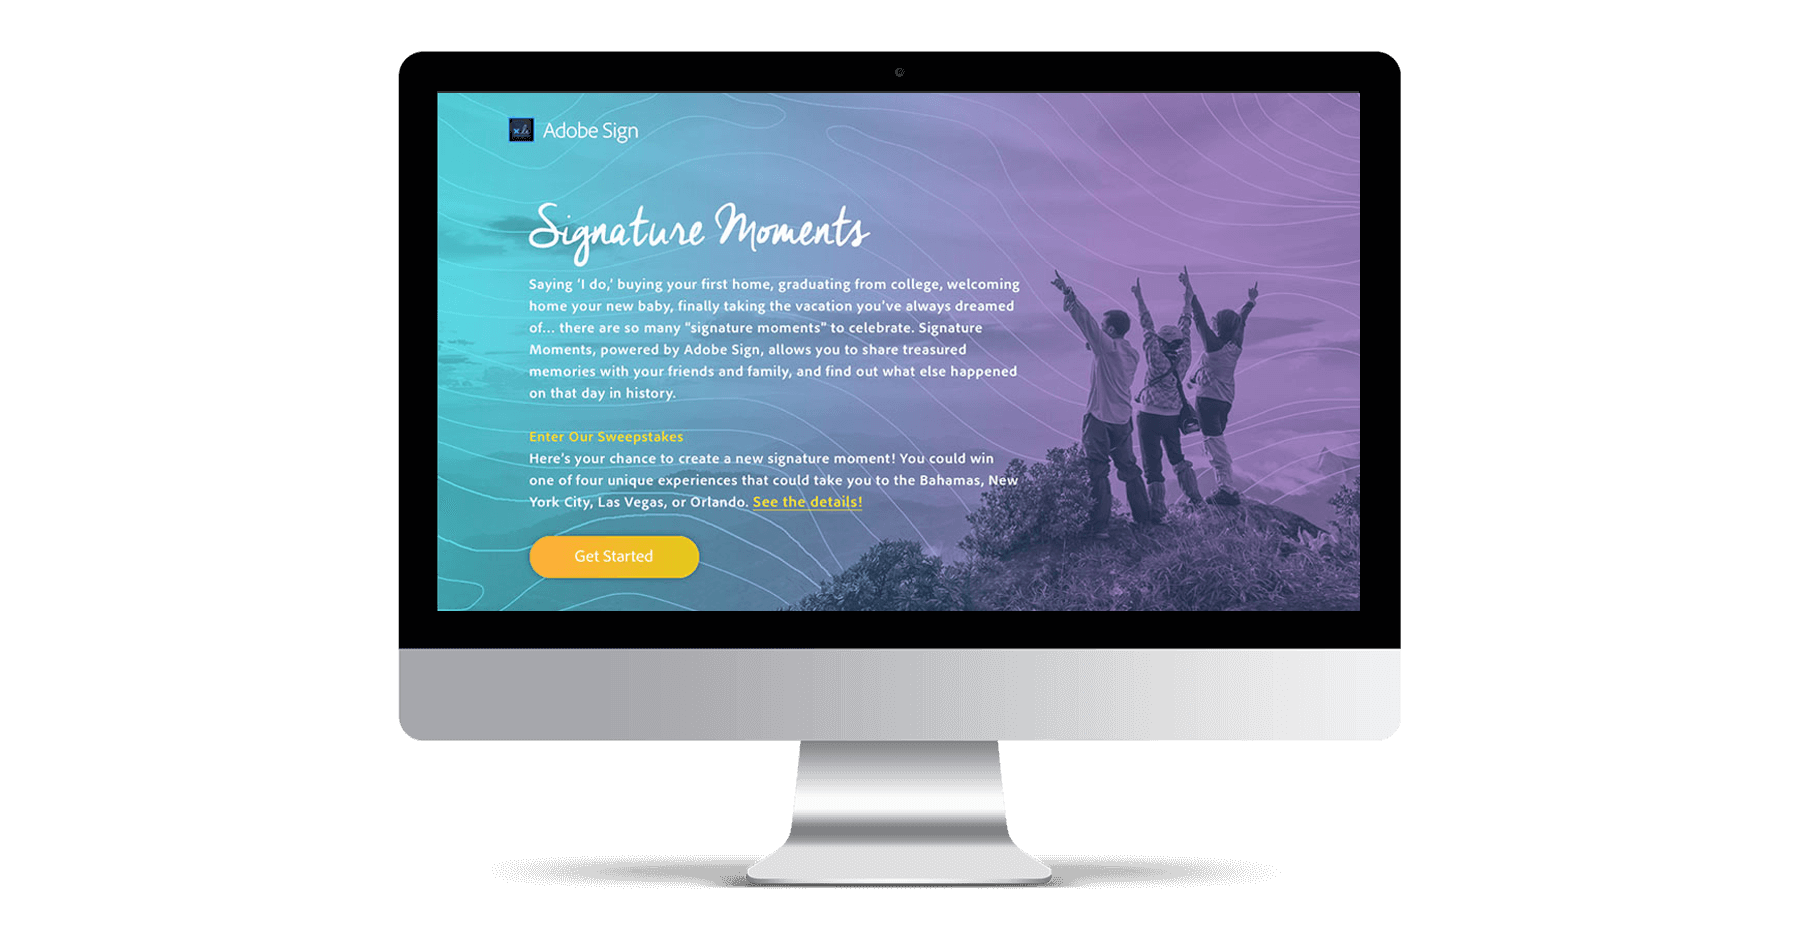 the adobe sign signature moments website displayed on an imac